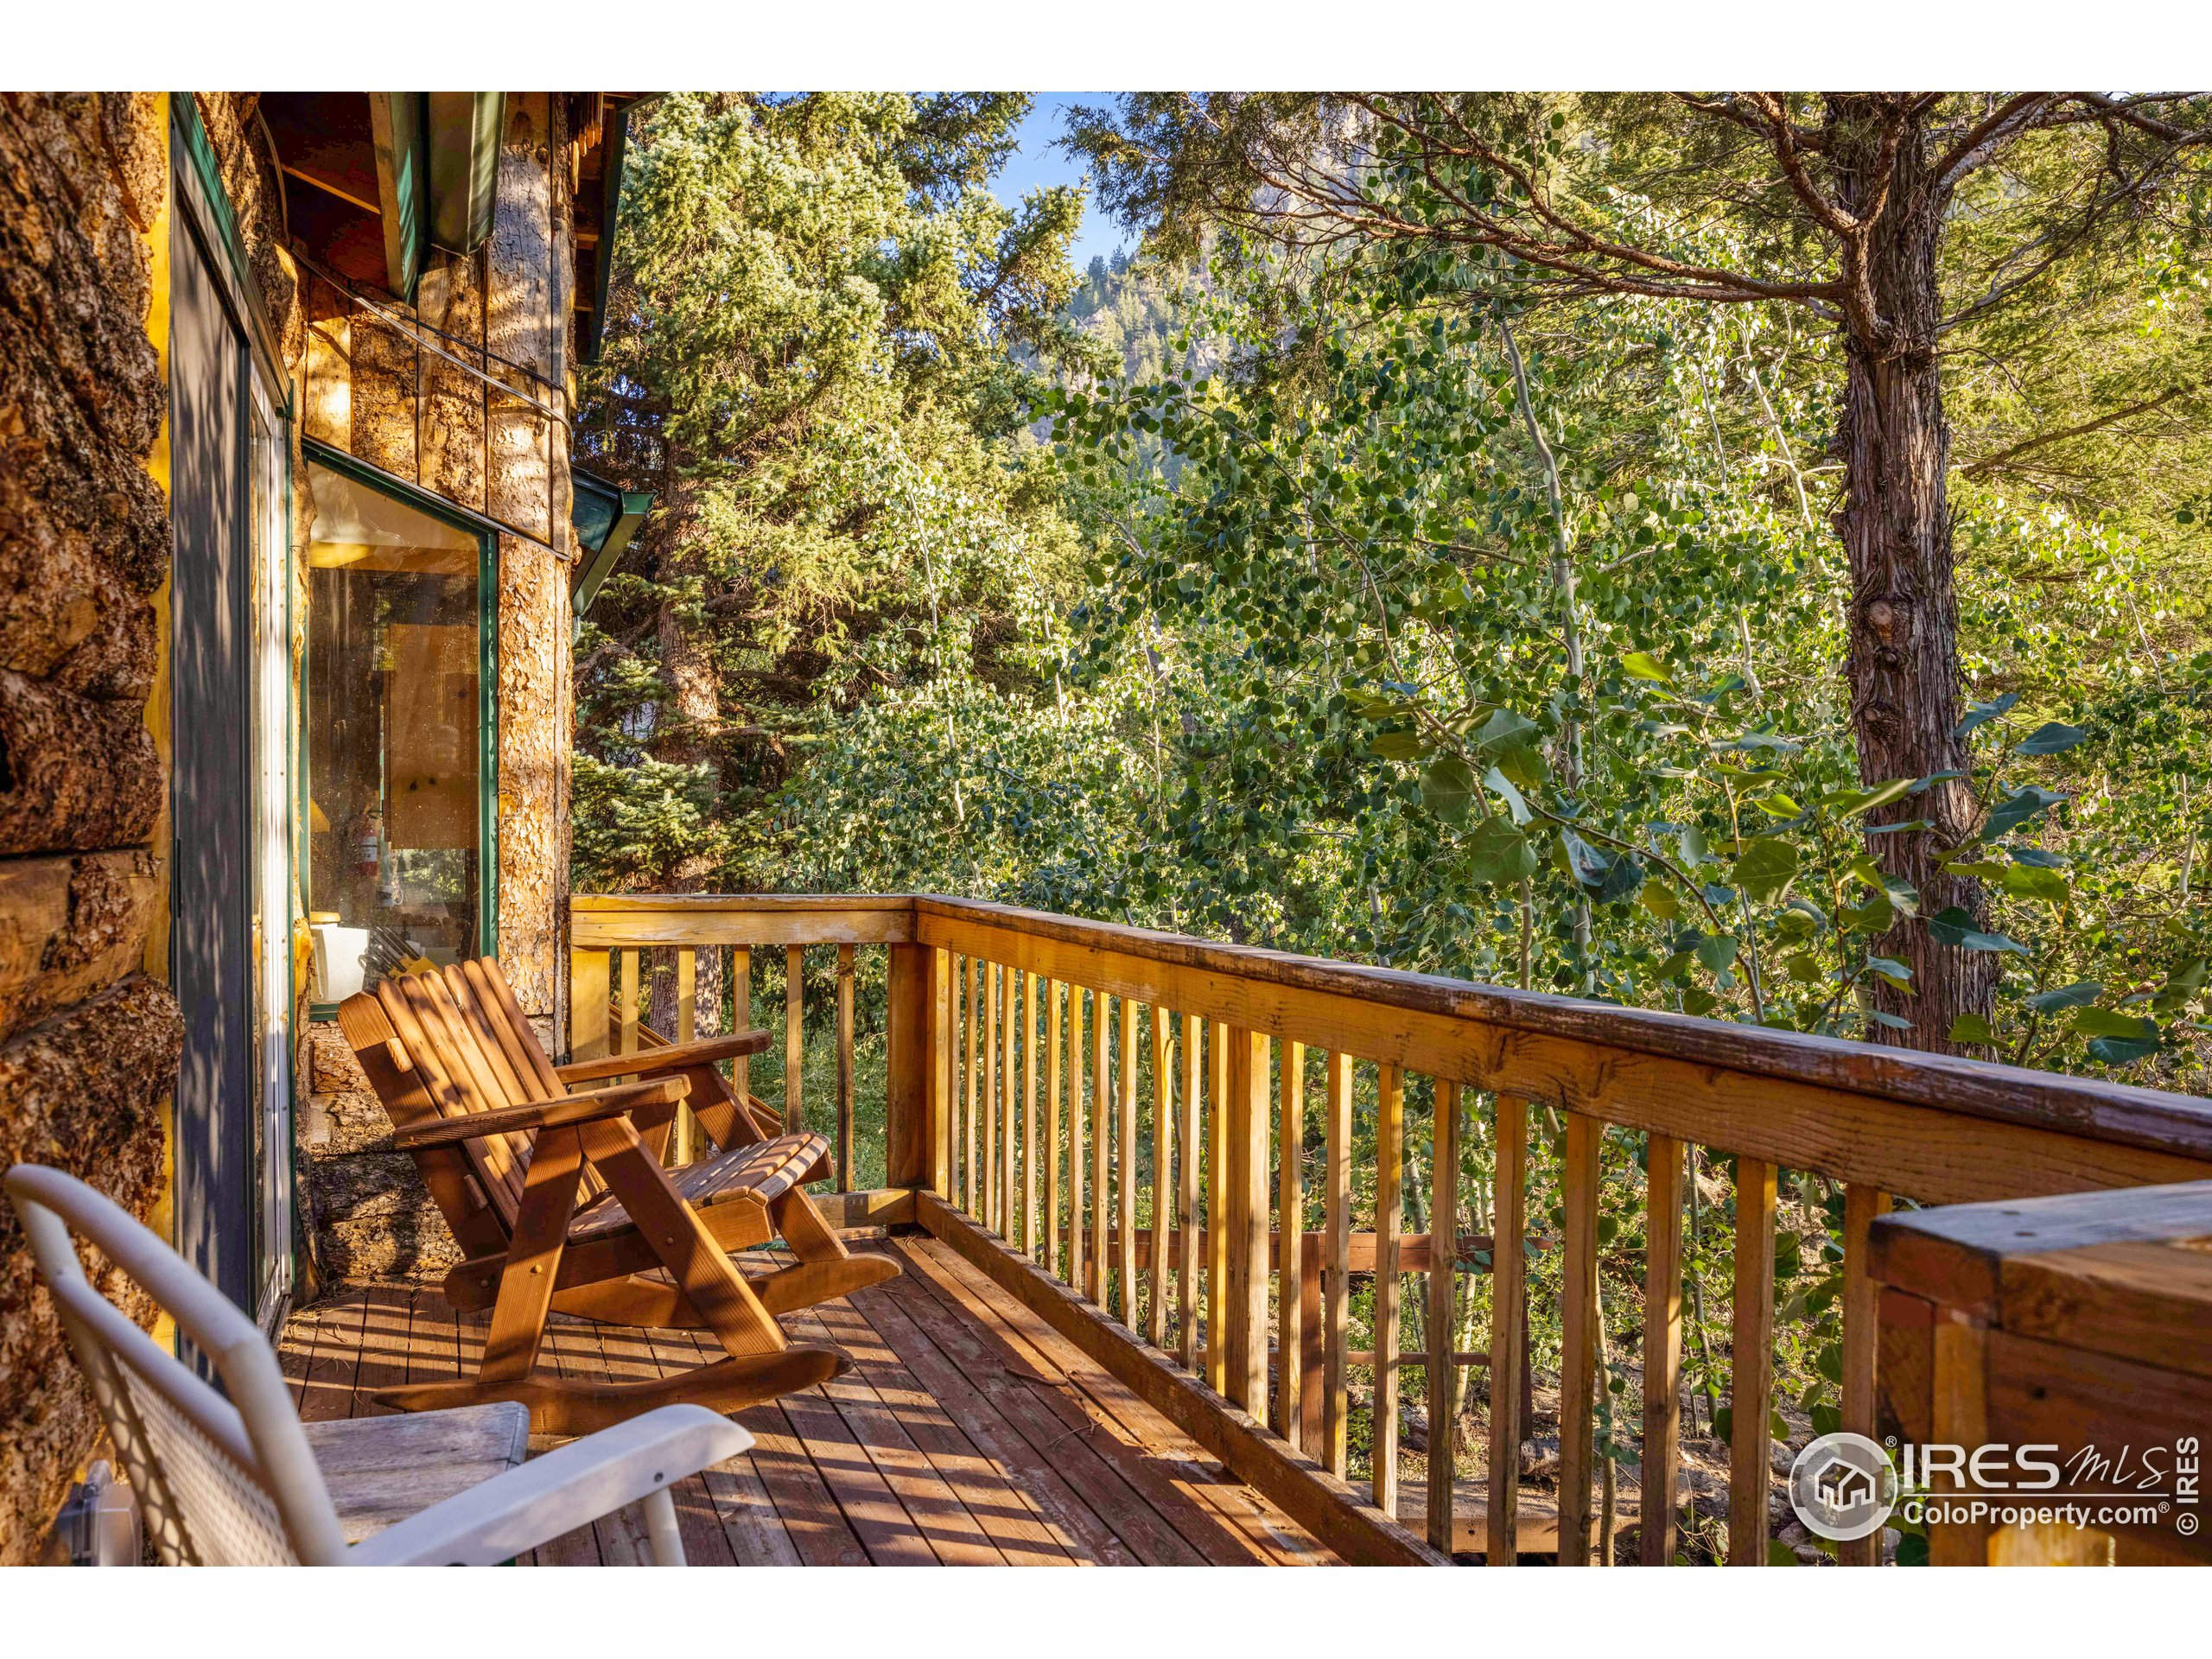 Primary Bedroom Deck in main Cabin with views of the stream